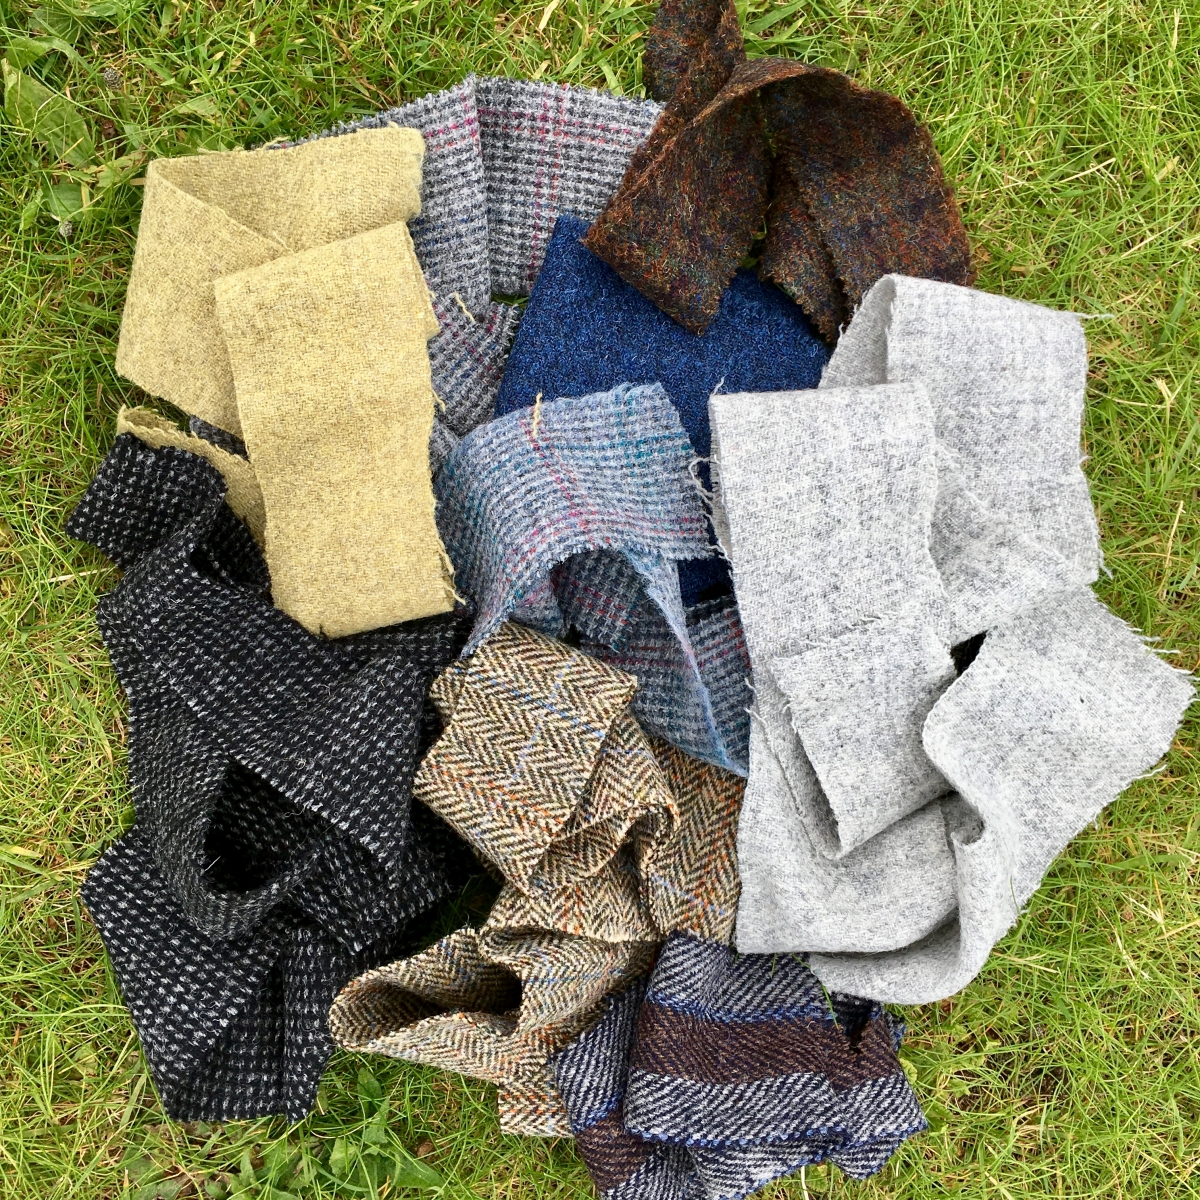 Tweed on the machair